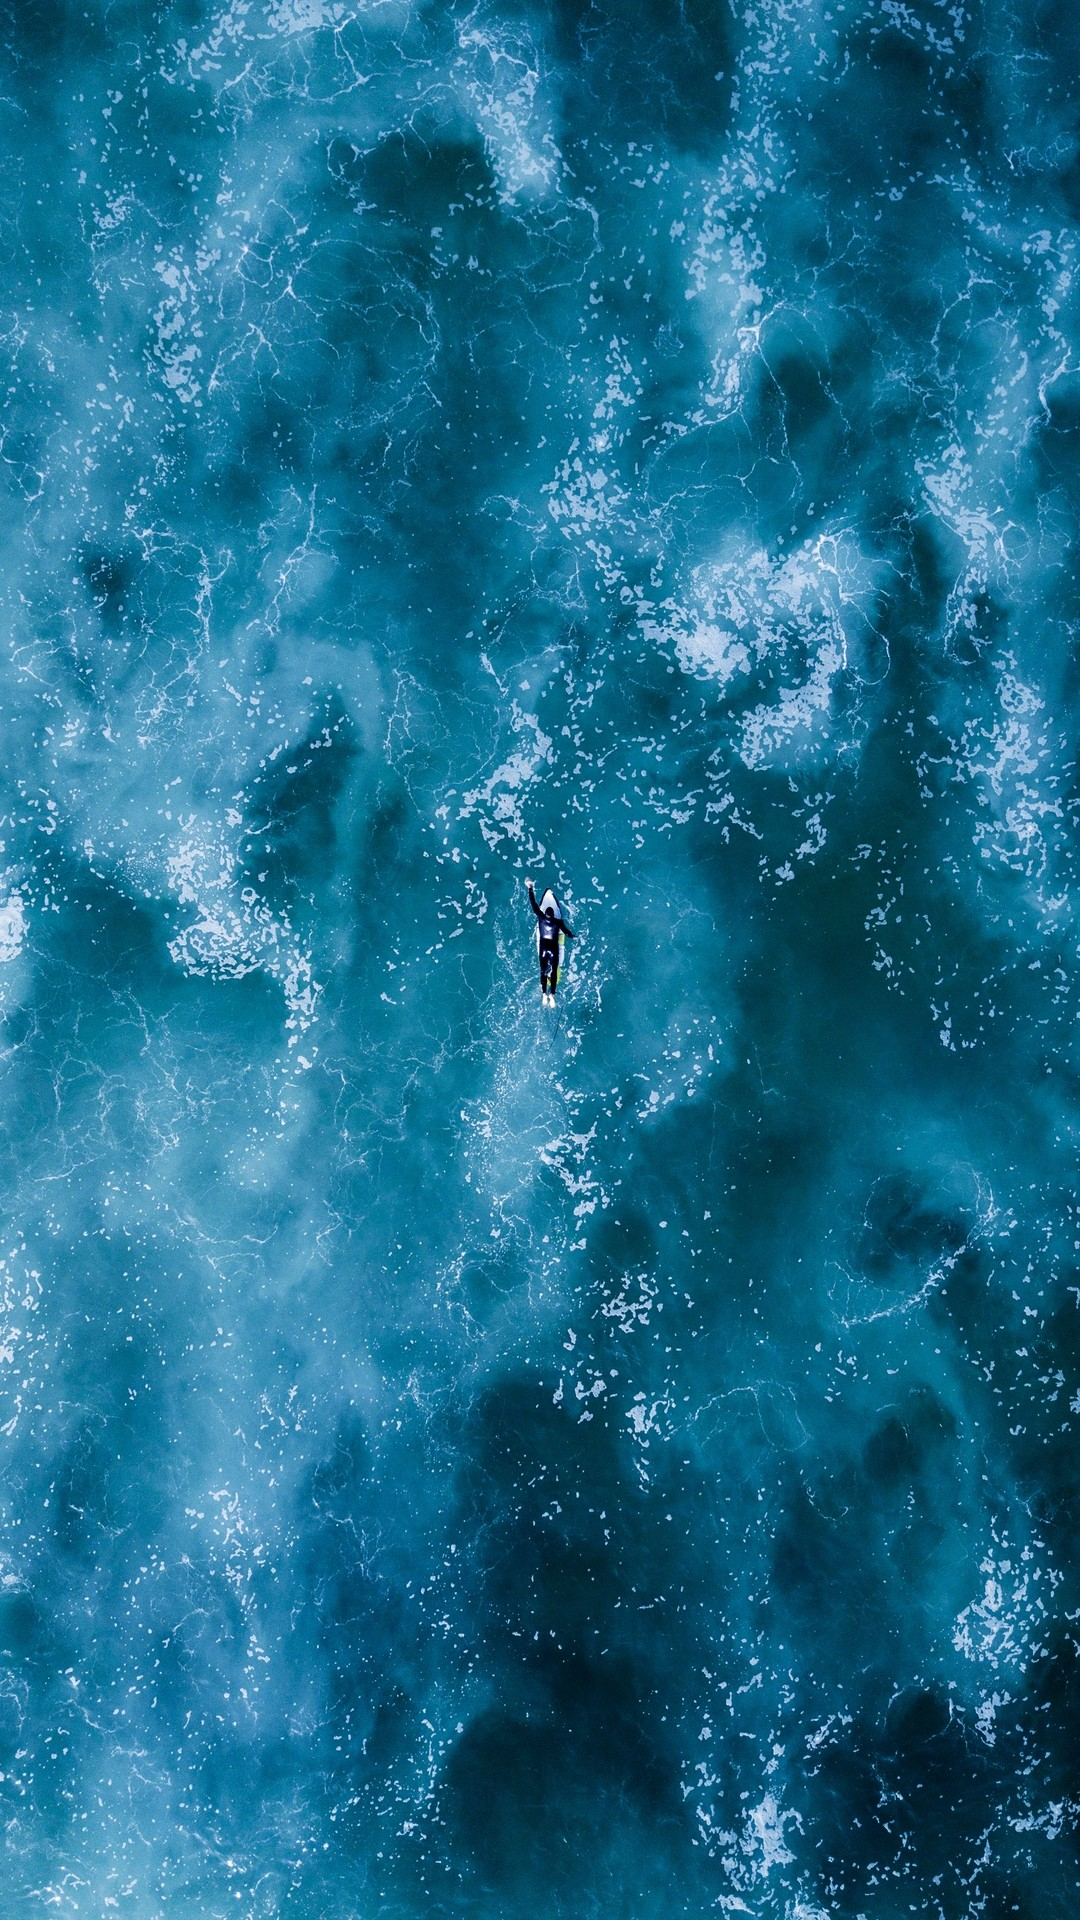 Free Surfing, ocean, waves, top view phone wallpaper by robin3958